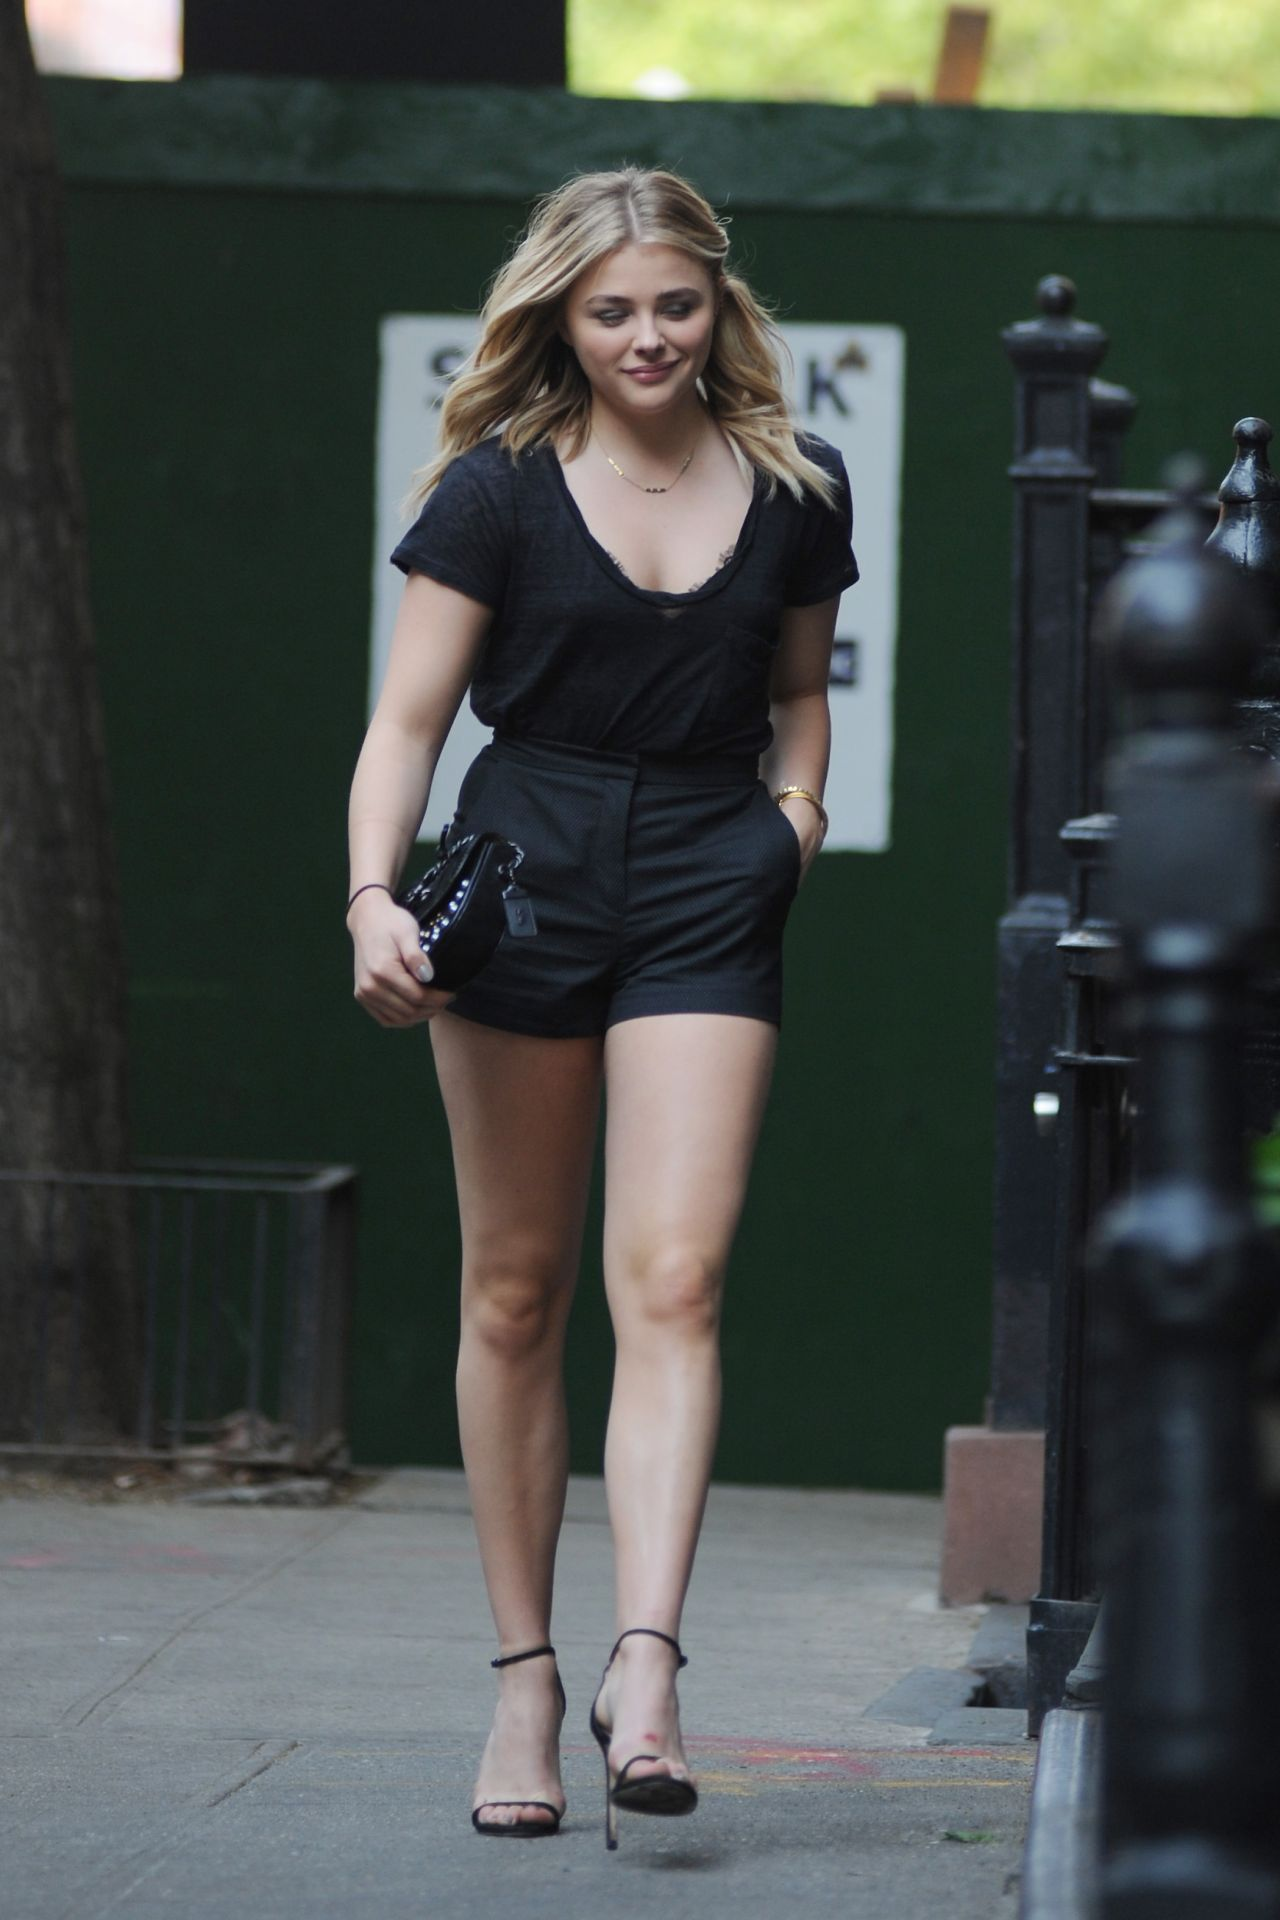 Chloë Moretz Shows Off Her Legs in a Pair of Black Shorts ...